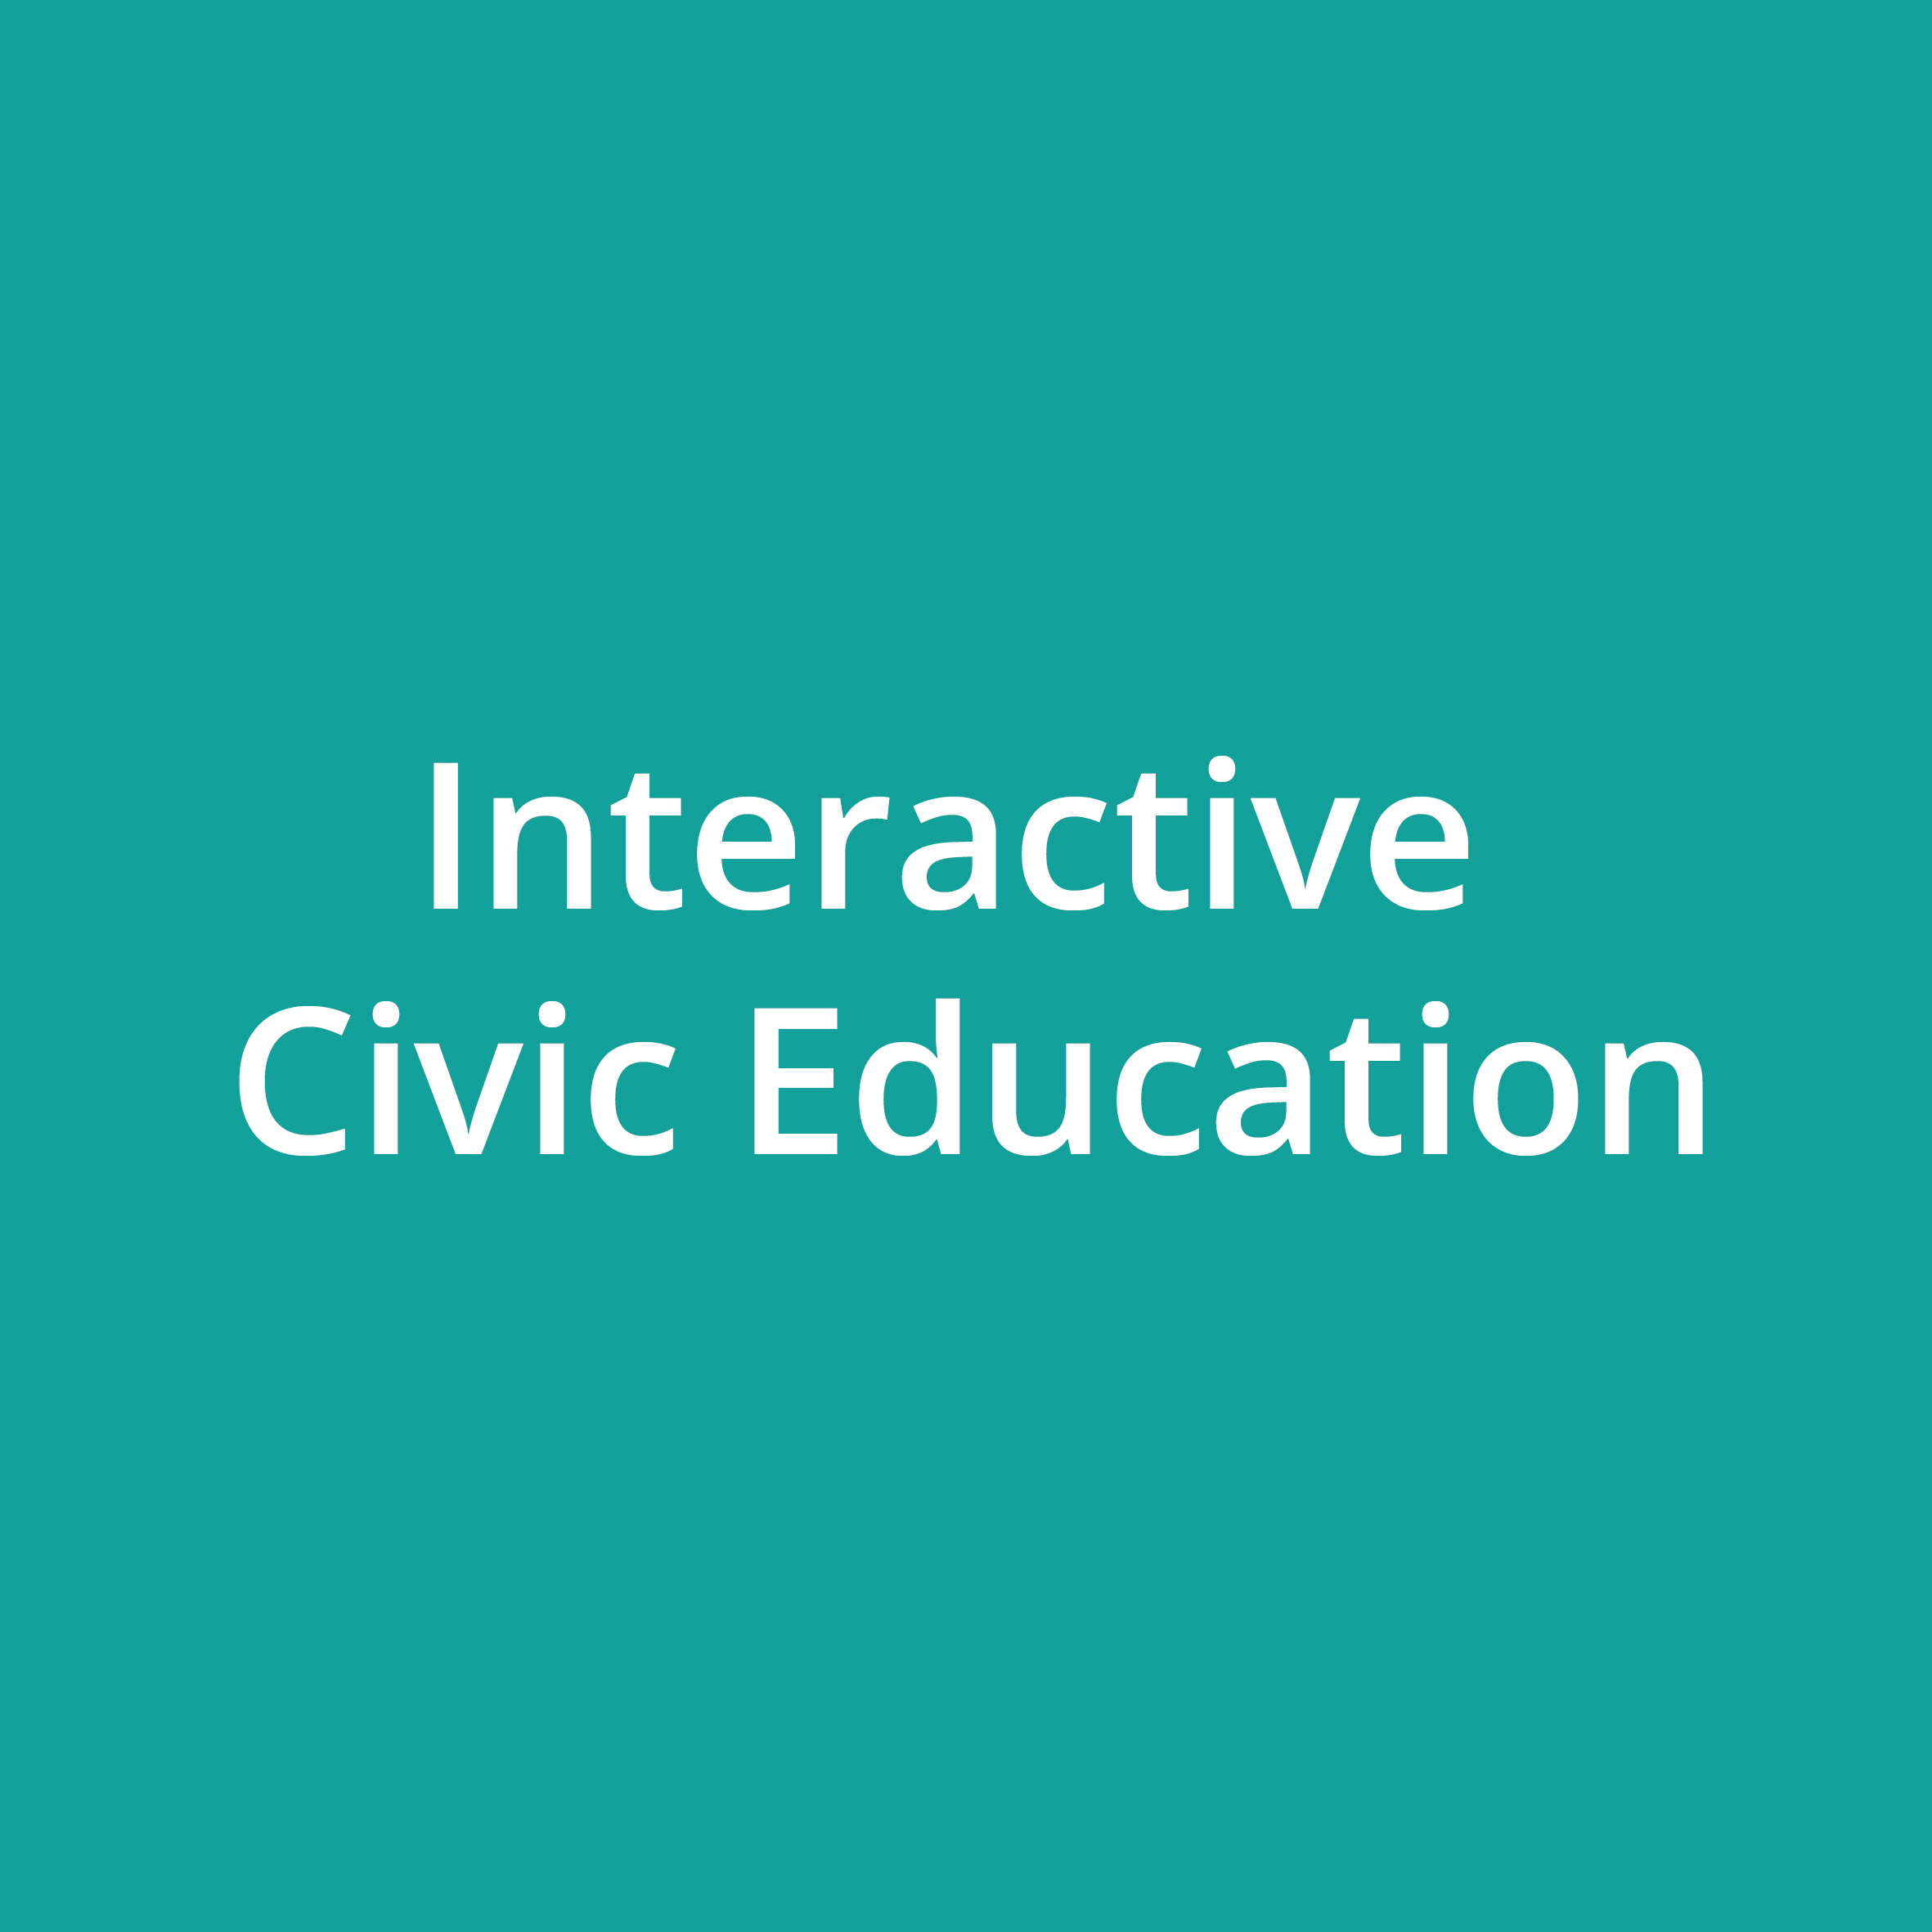 Interactive Civic Education